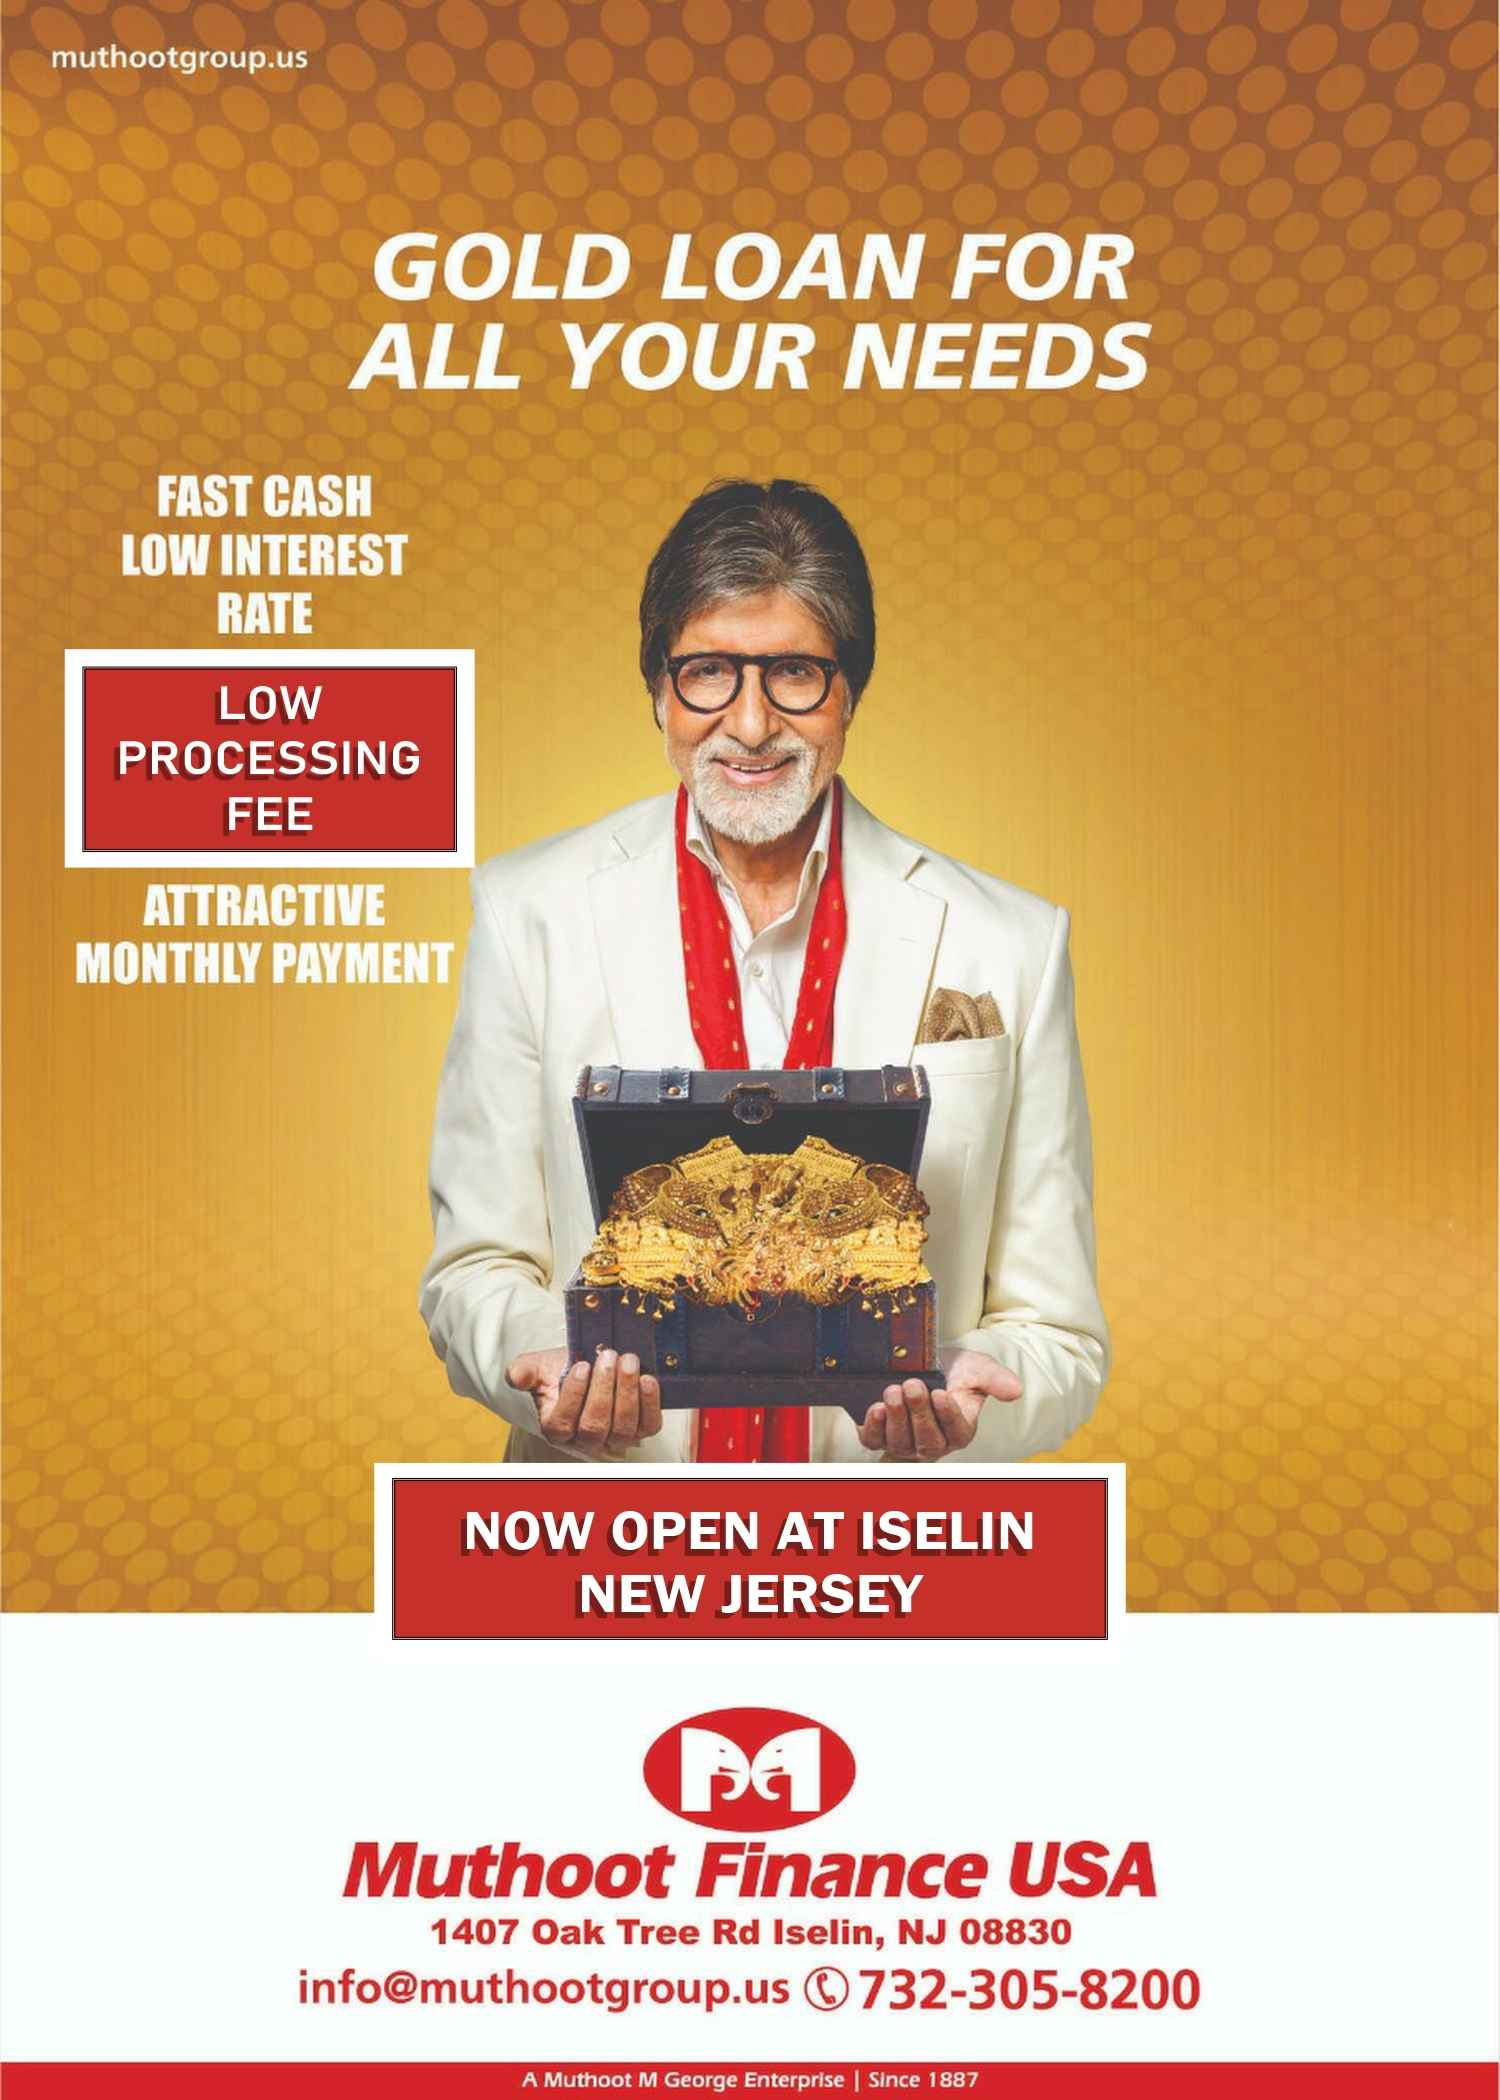 Muthoot Finance now open in Iselin, New Jersey